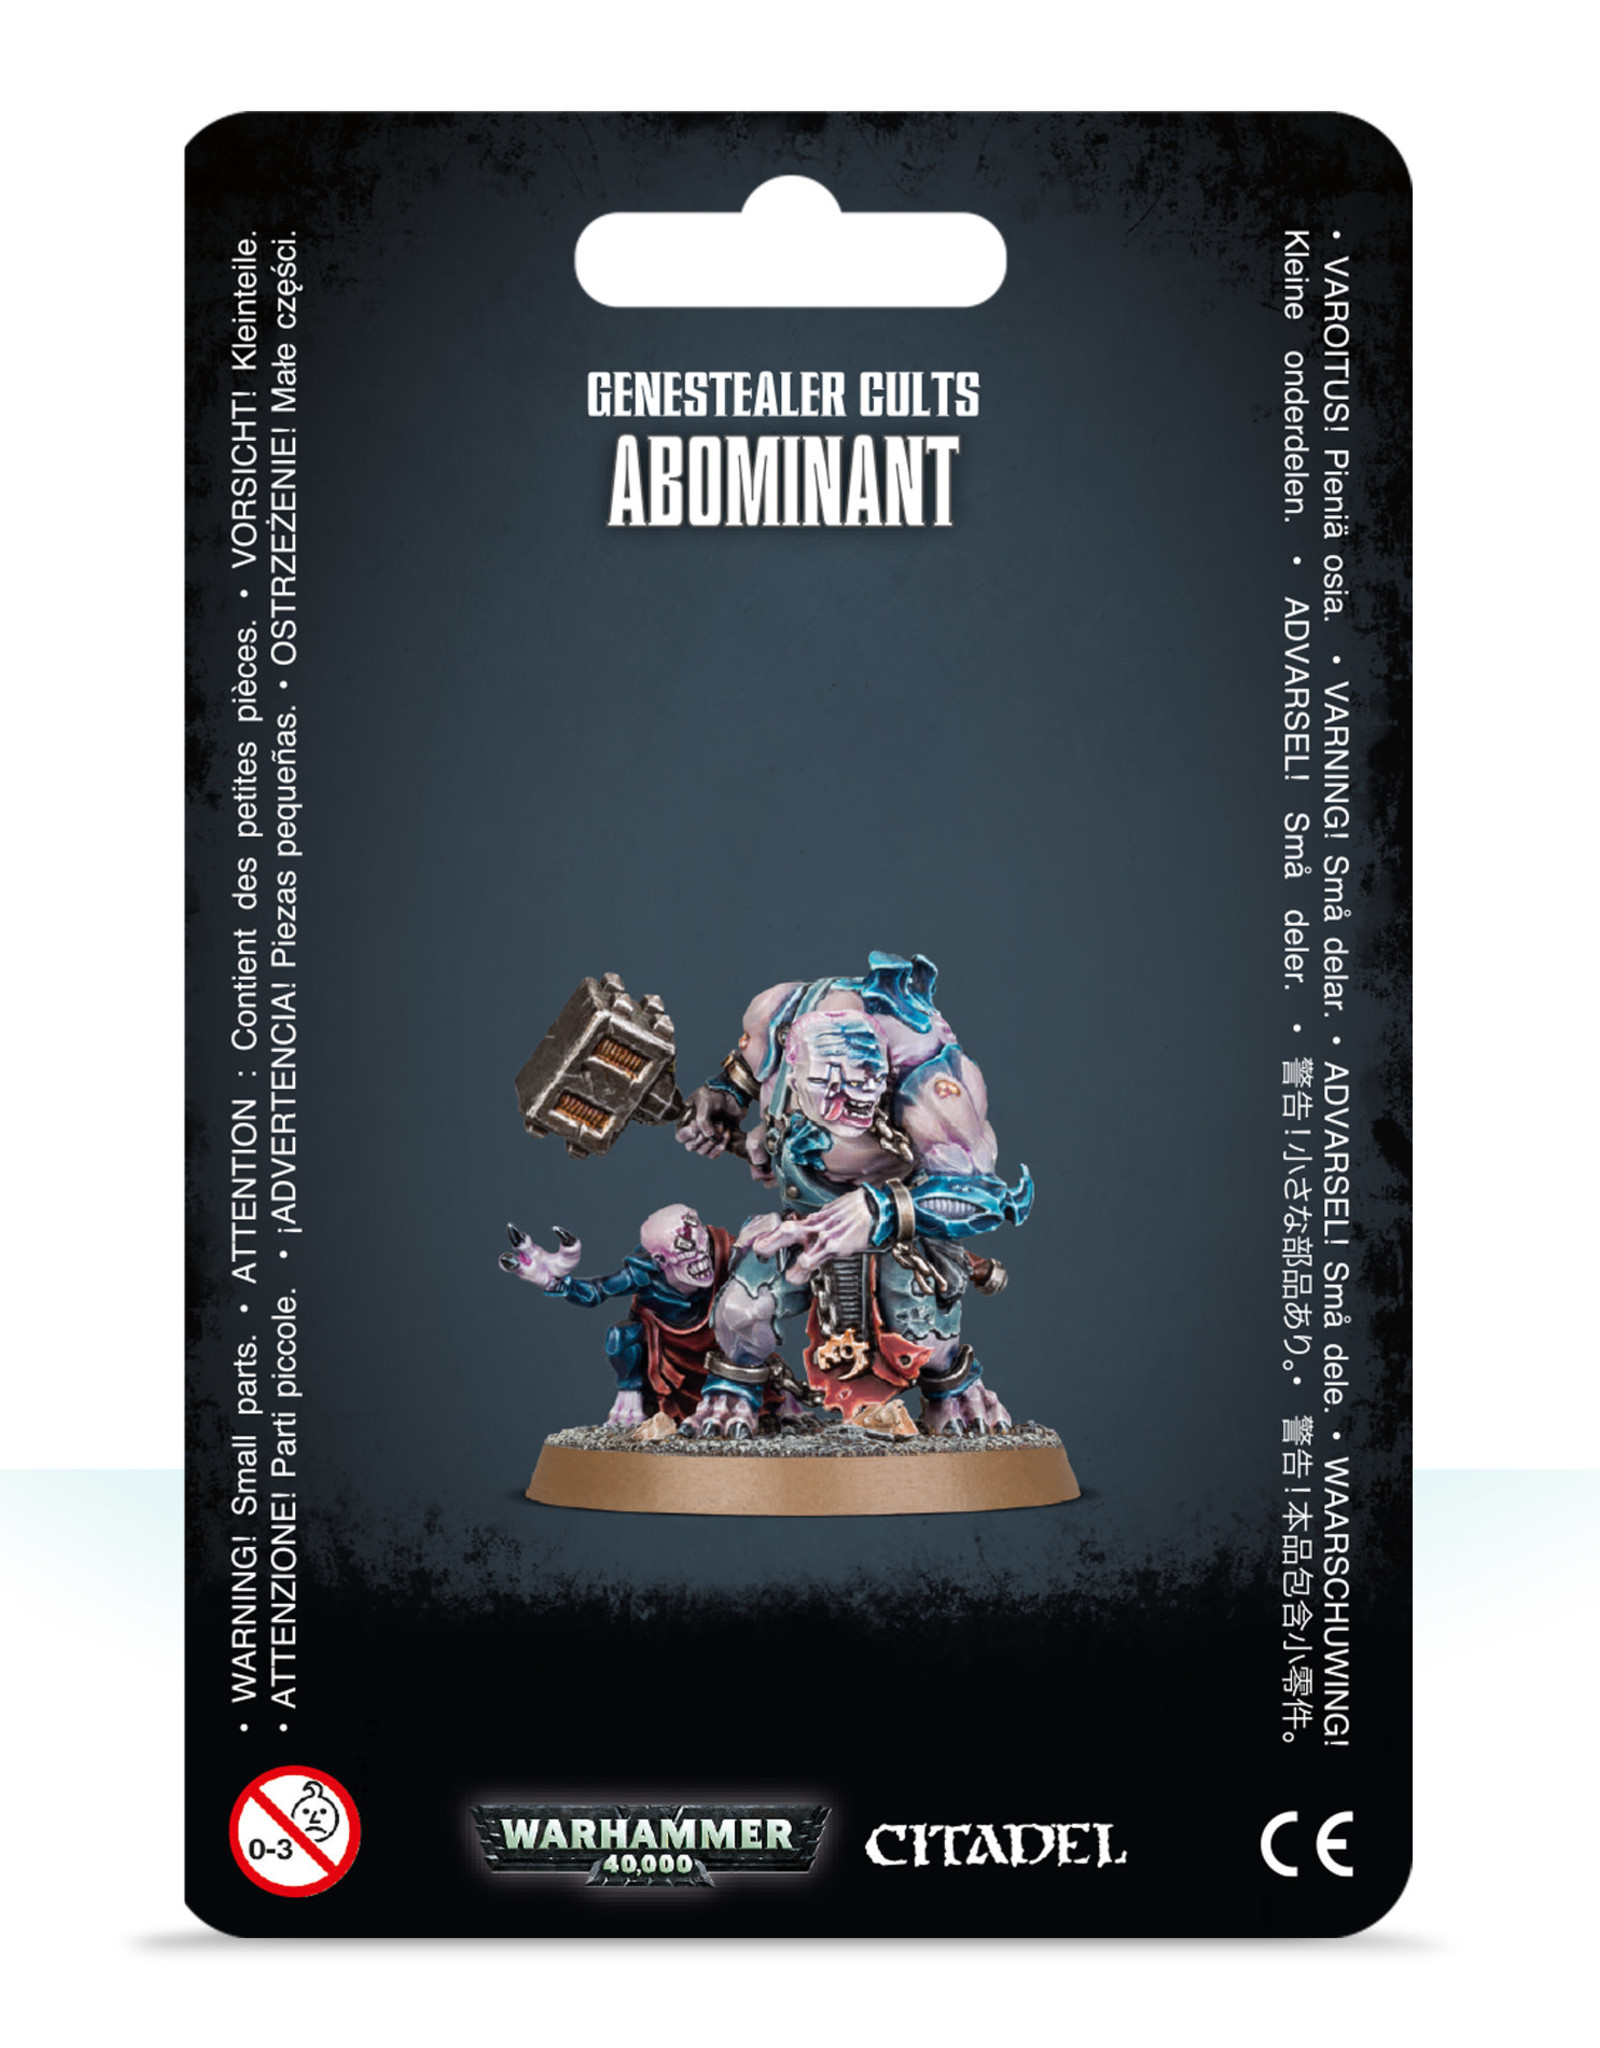 Games Workshop Genestealer Cults - Abominant